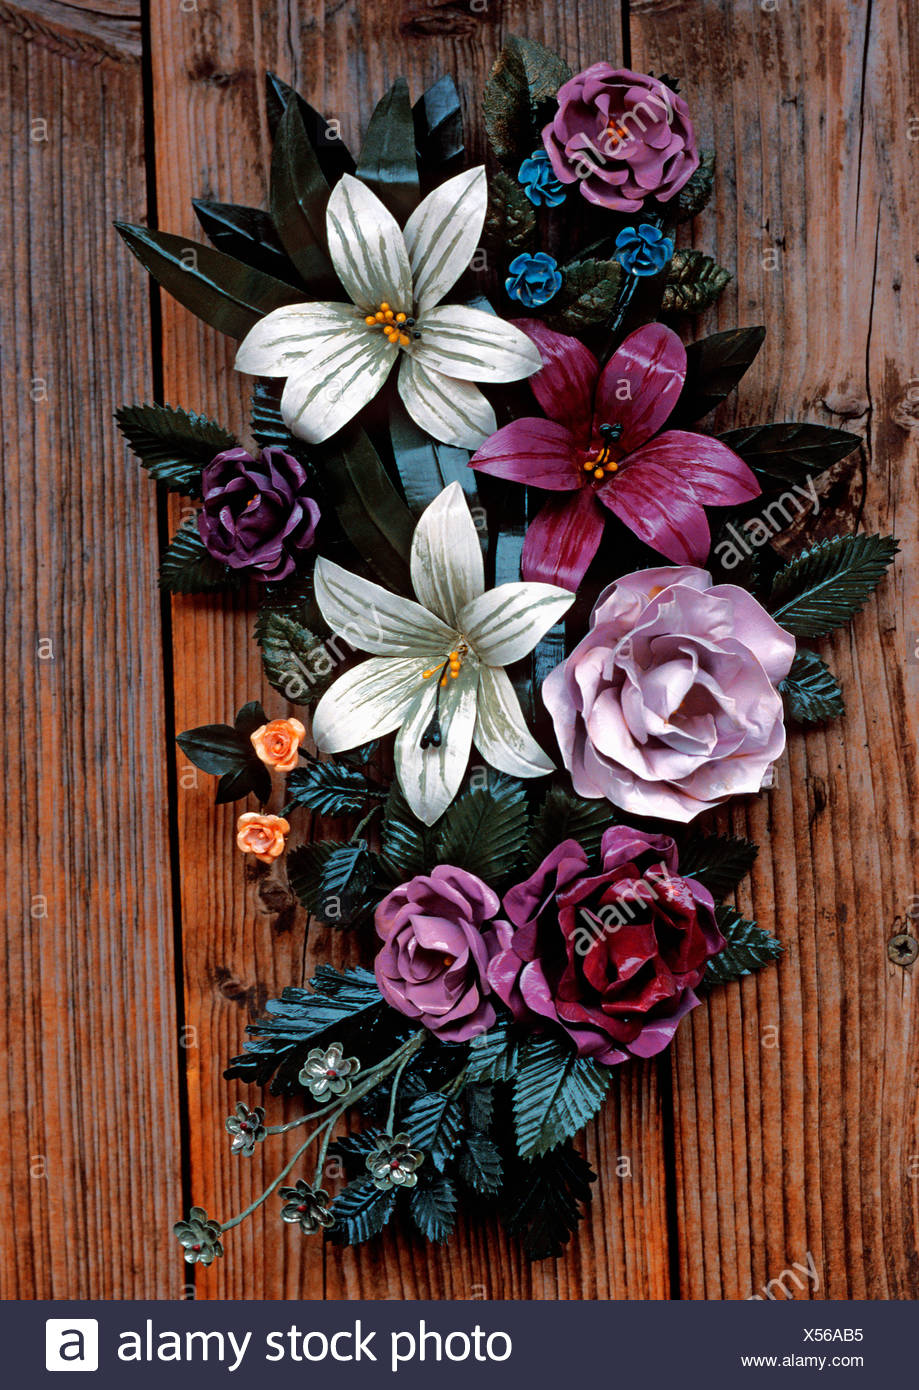 Bouquet of metal flowers attached to a wooden door Stock Photo ...